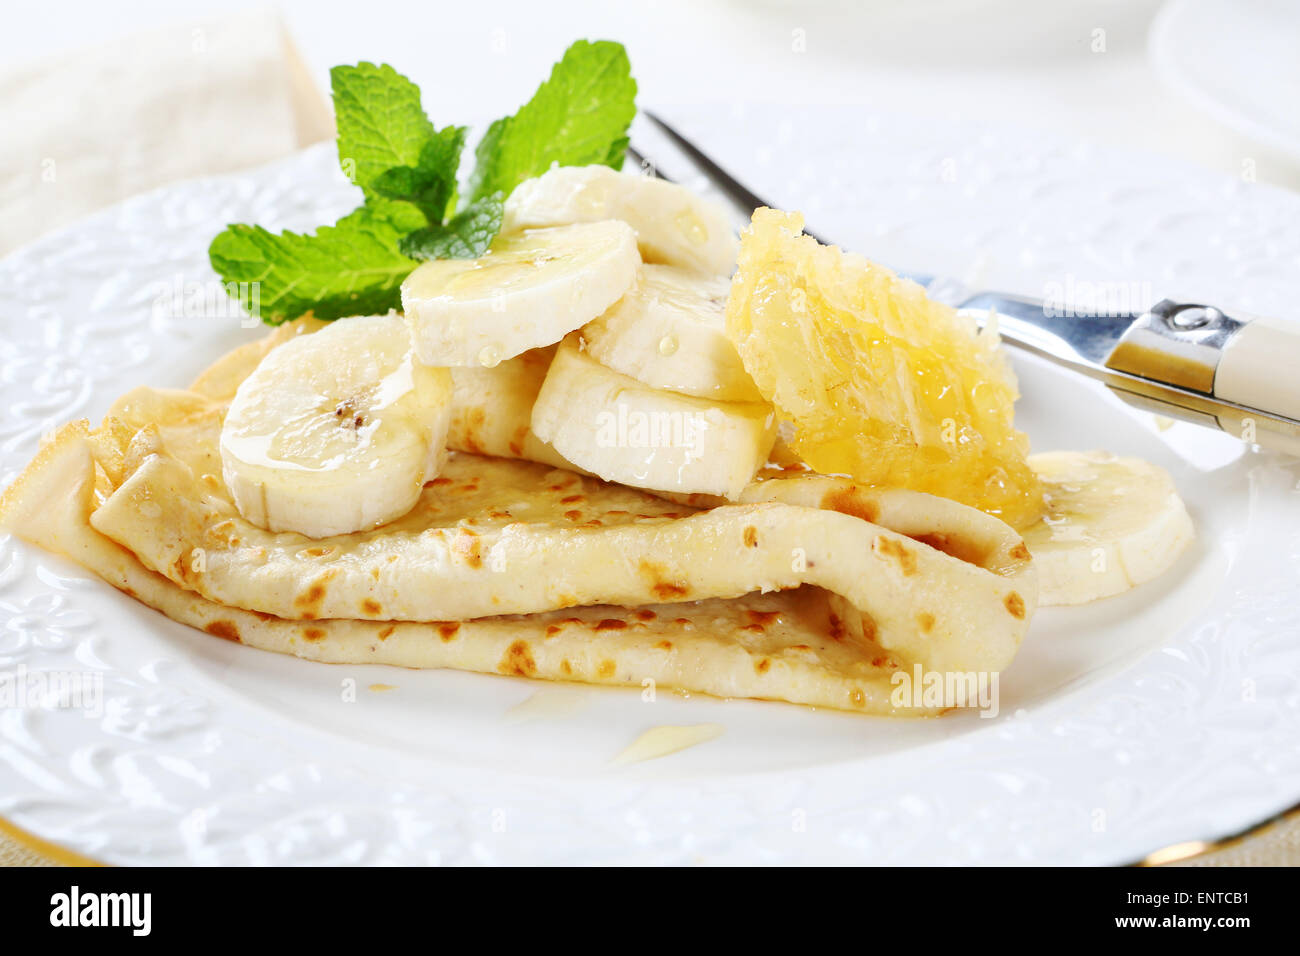 Pancakes on a white plate, food - Stock Image